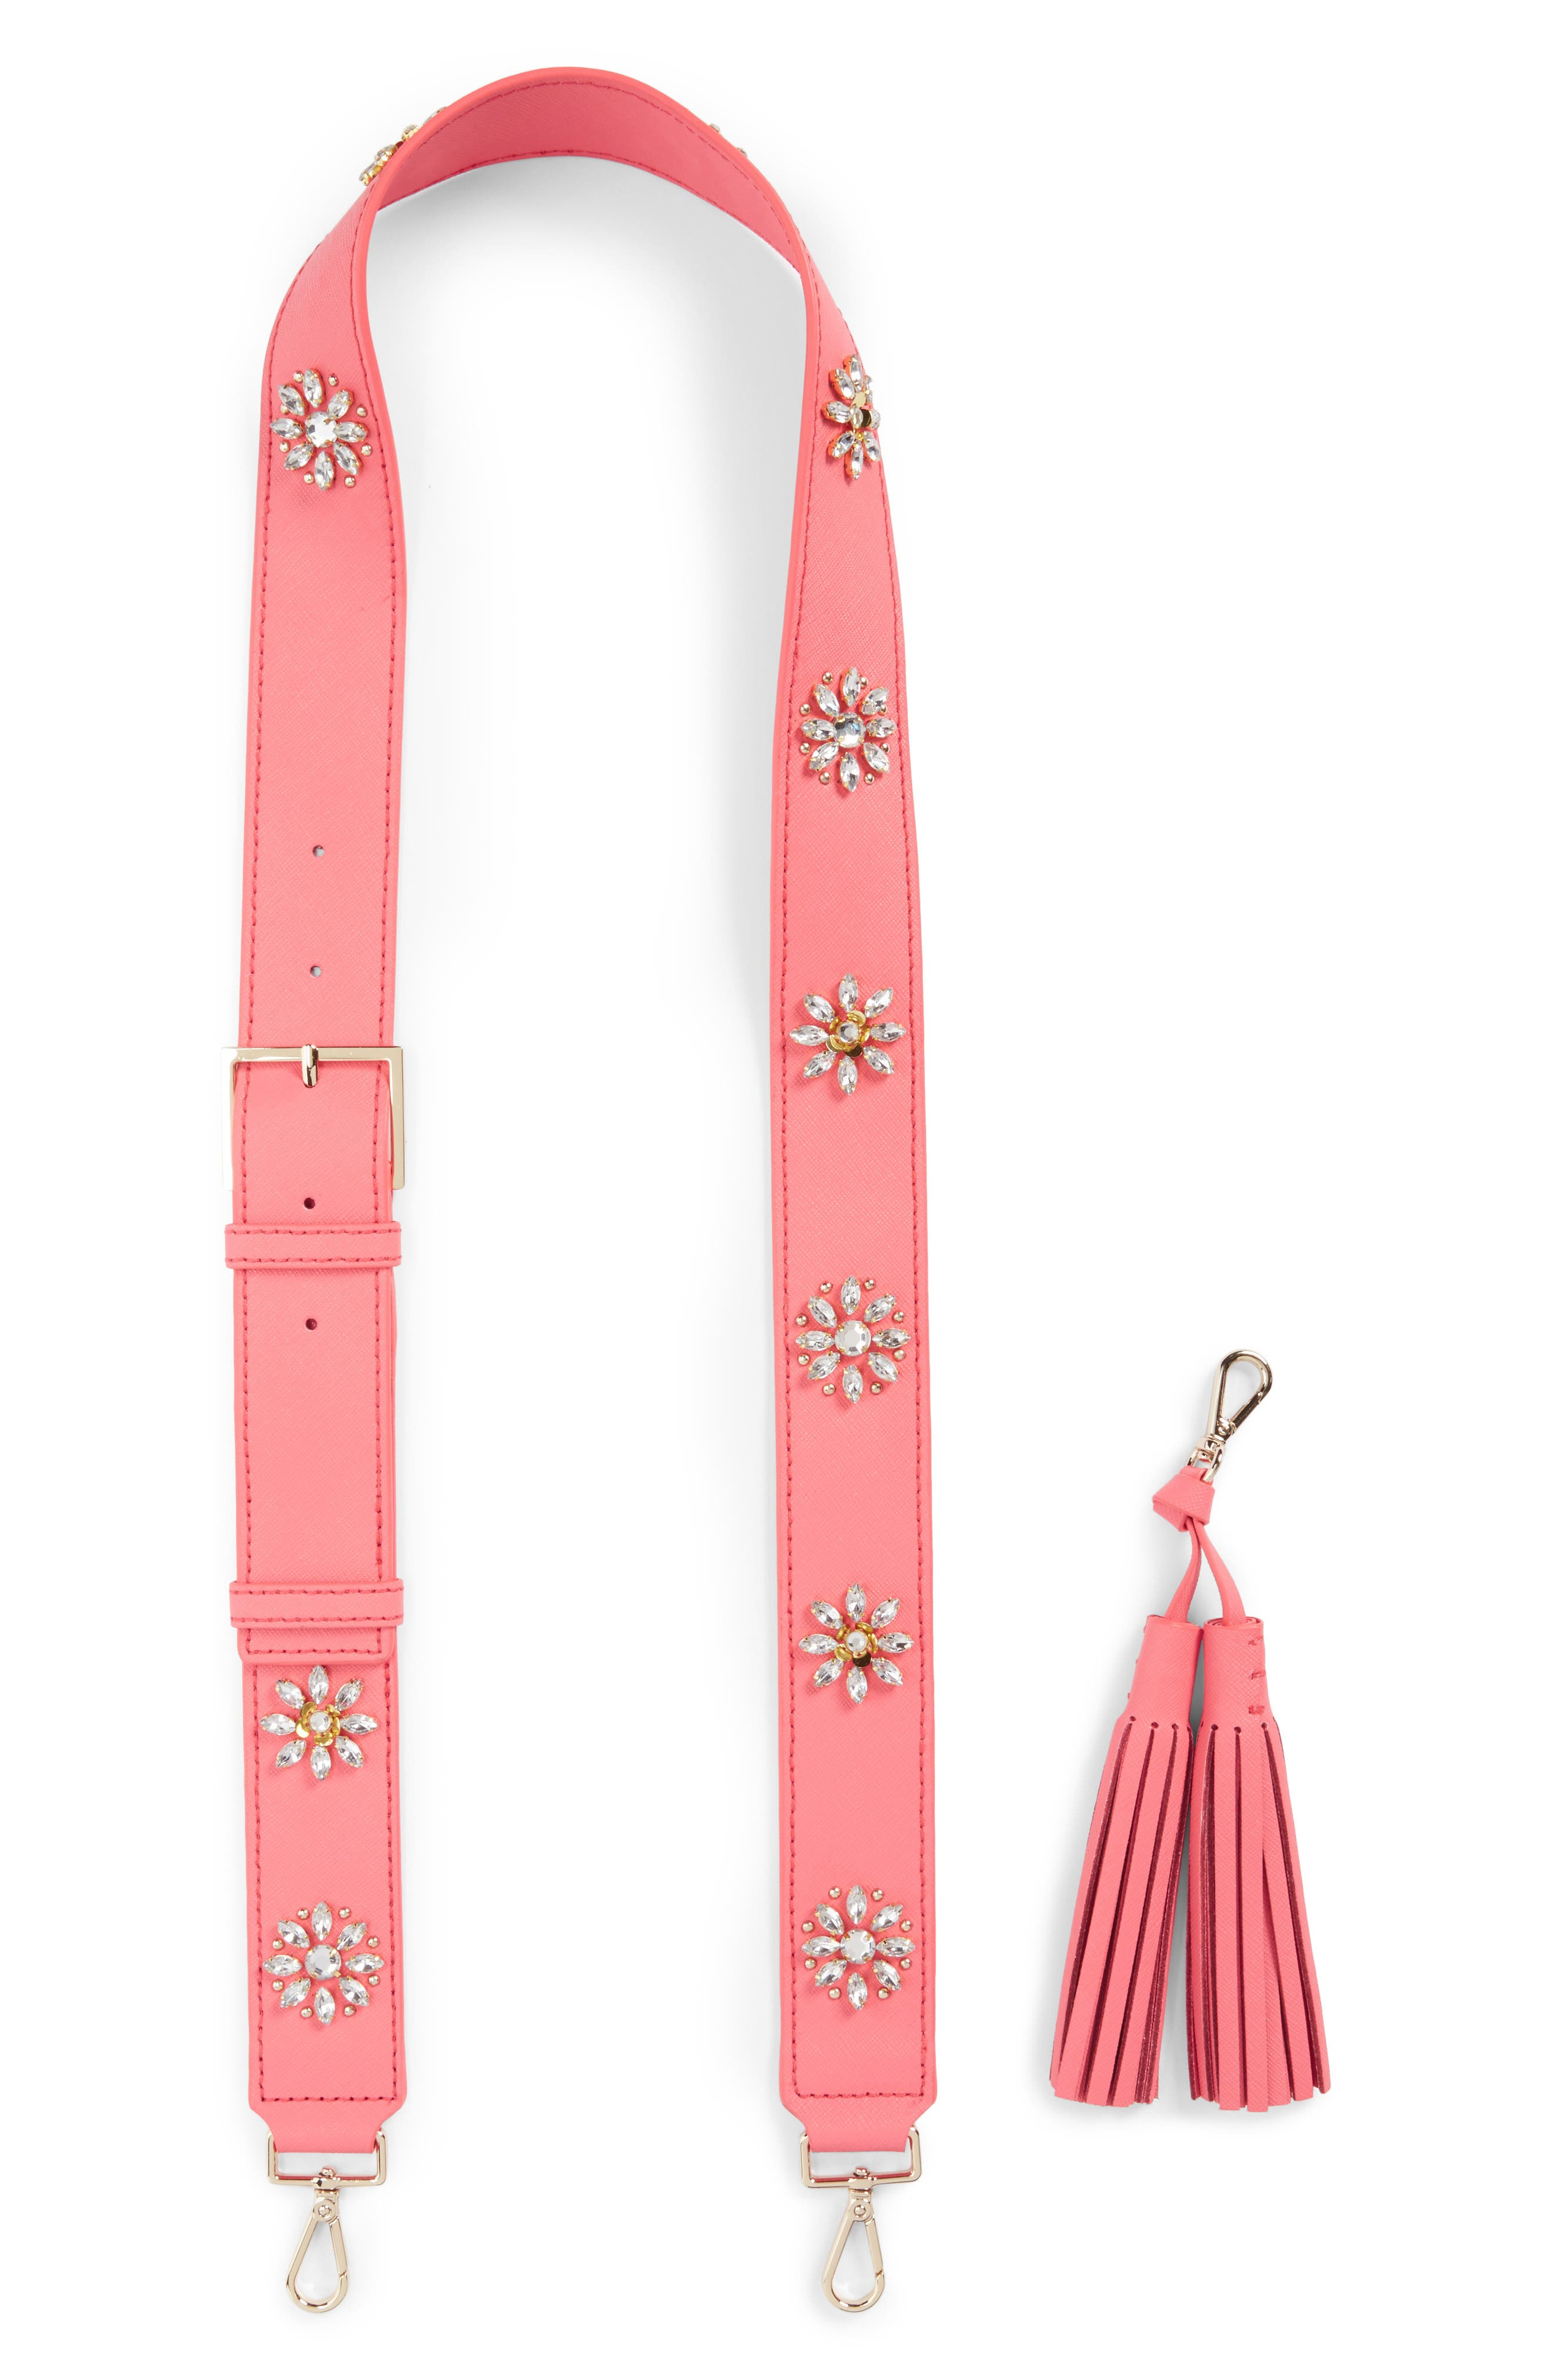 Main Image - kate spade new york make it mine crystal flowers leather guitar bag strap & tassel